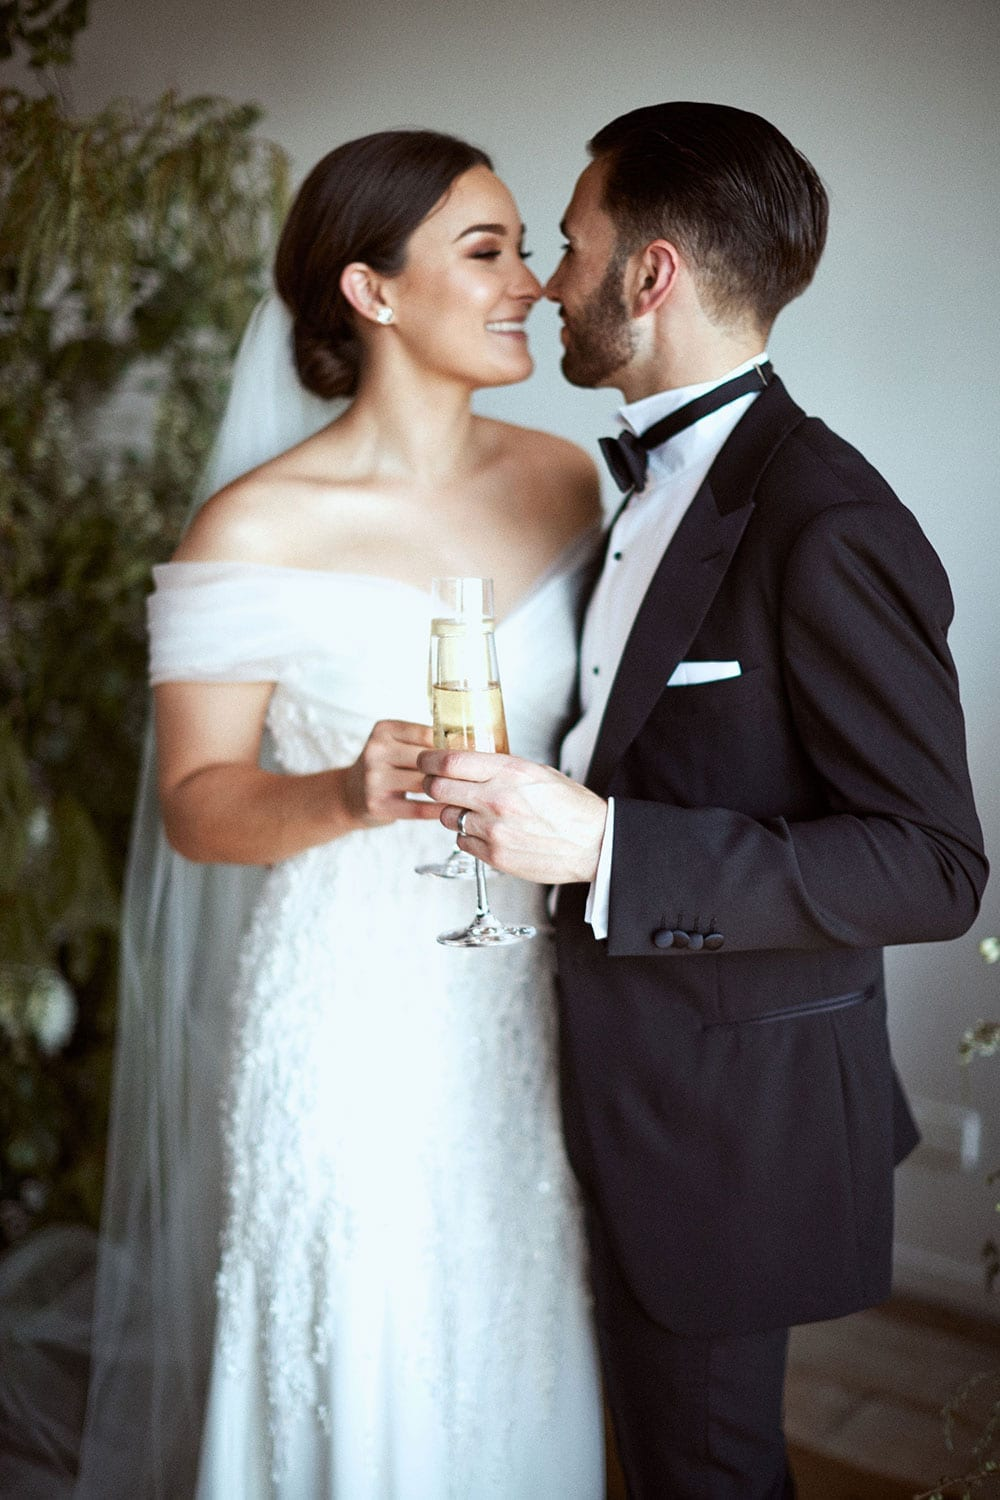 Vinka Design Features Real Weddings - bride in custom made gown with stunning silhouette with groom nose to nose